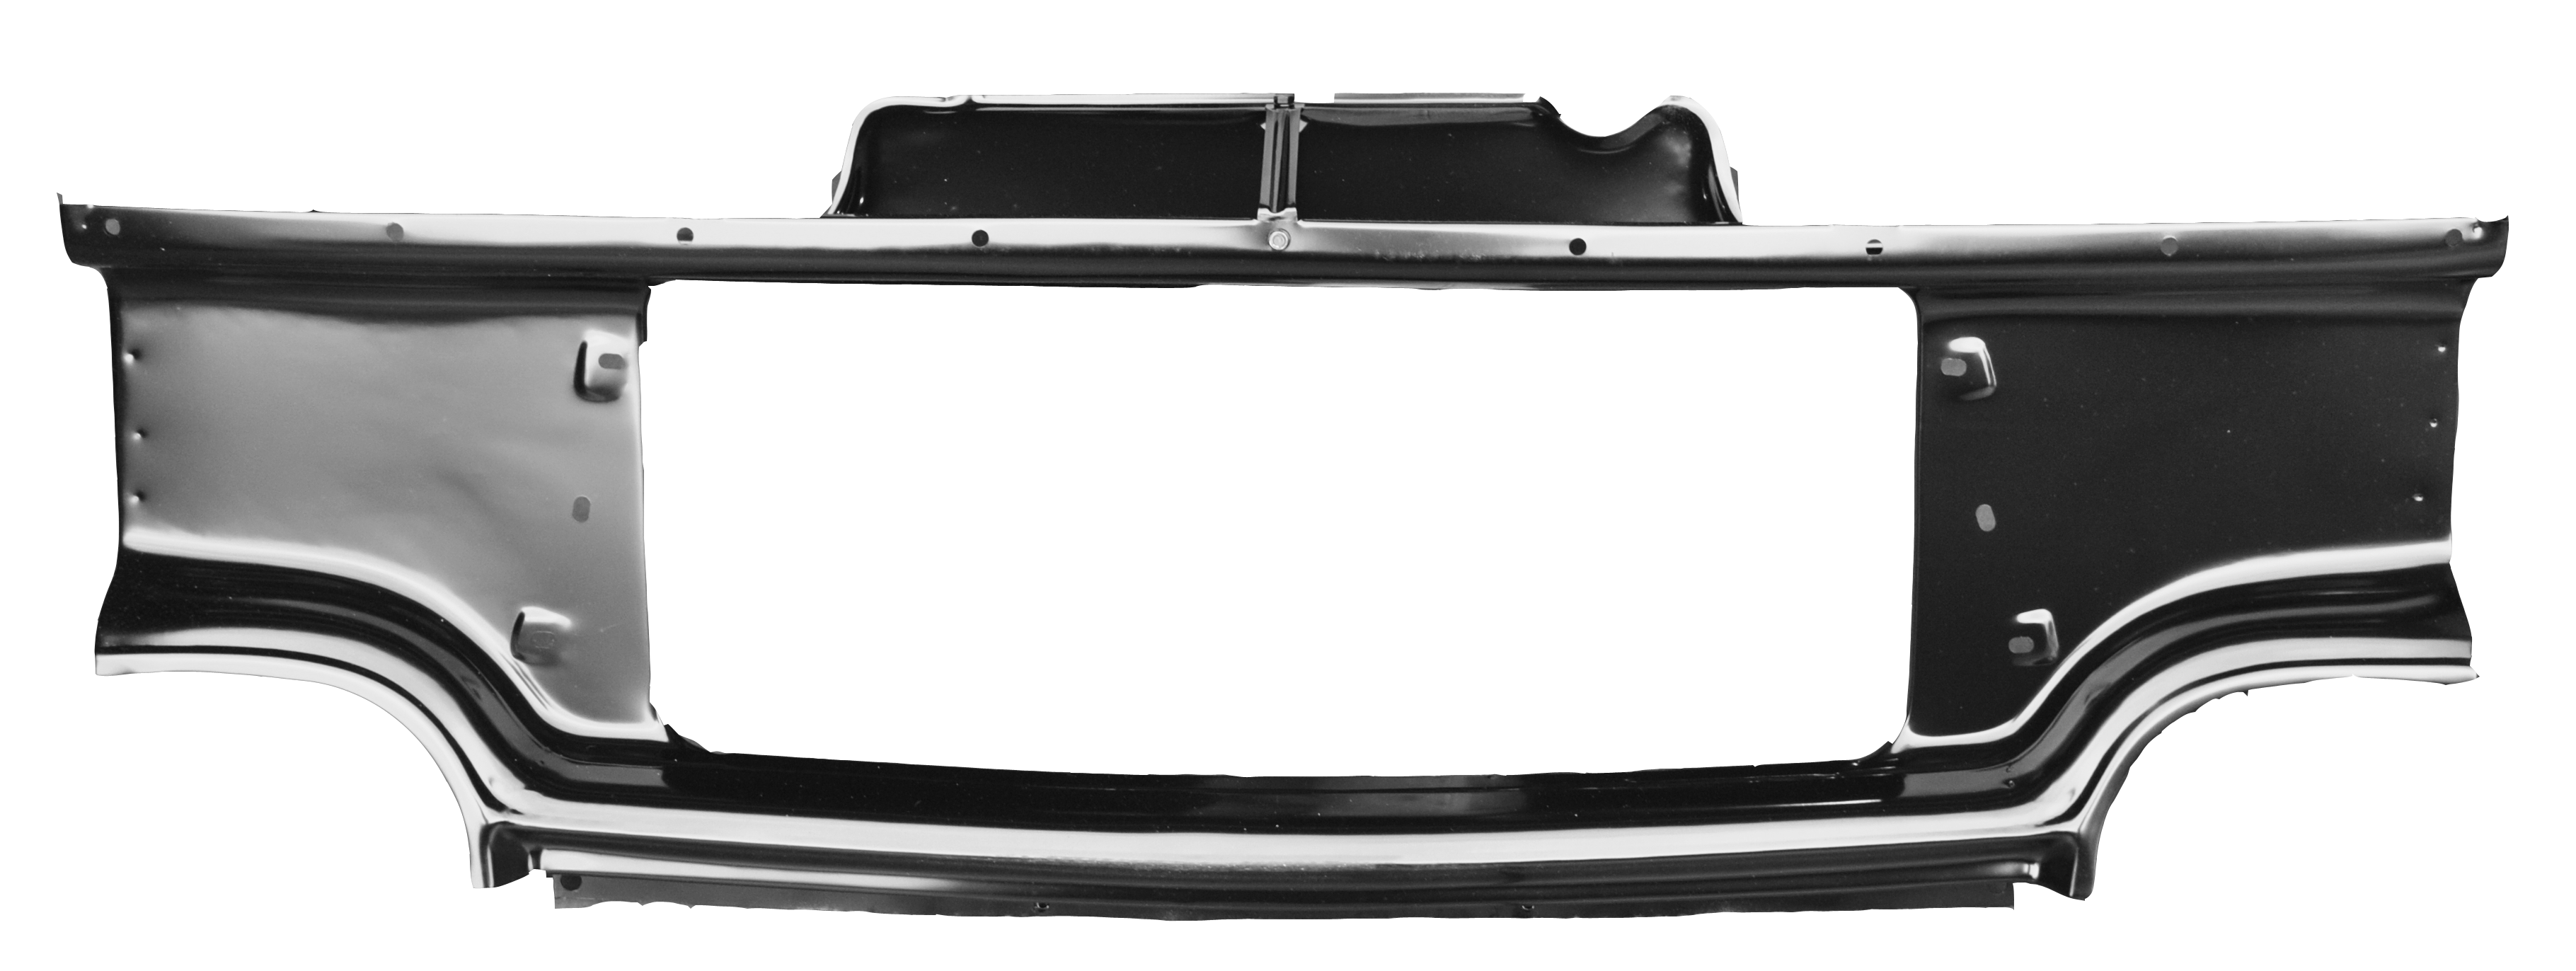 1958-59 C10 grille support front panel